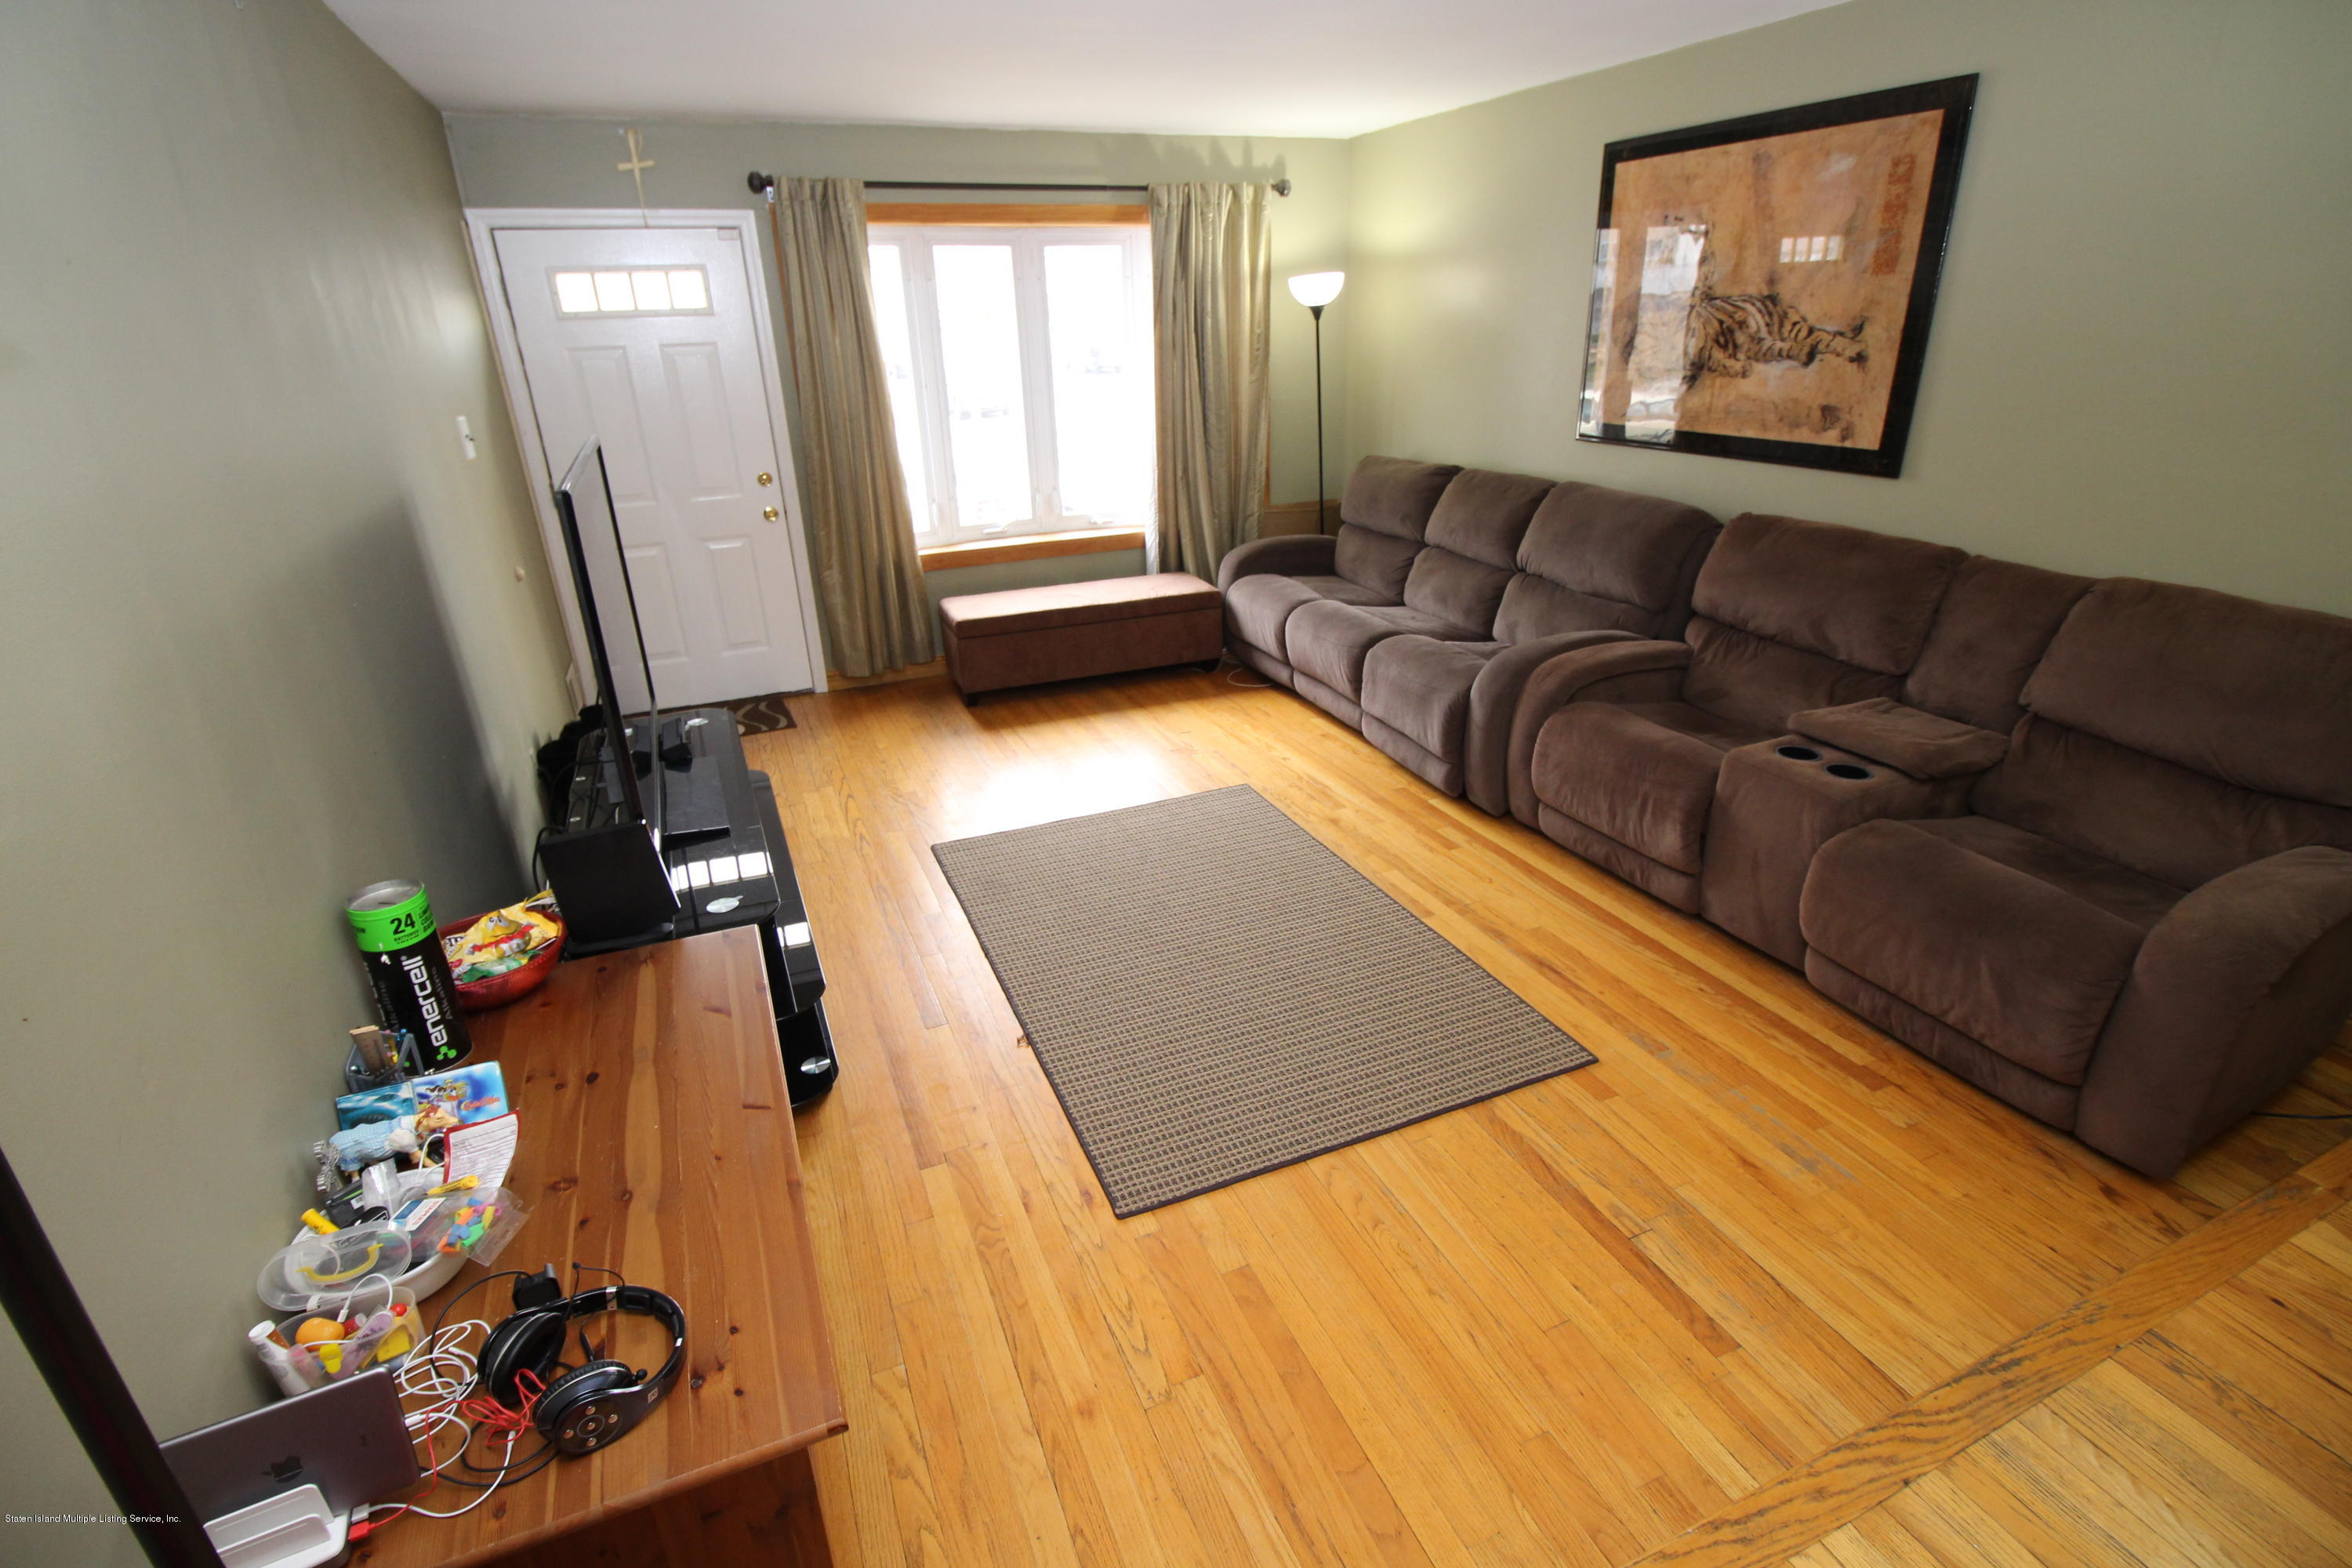 Single Family - Semi-Attached 48 Mulberry Avenue  Staten Island, NY 10314, MLS-1126171-4